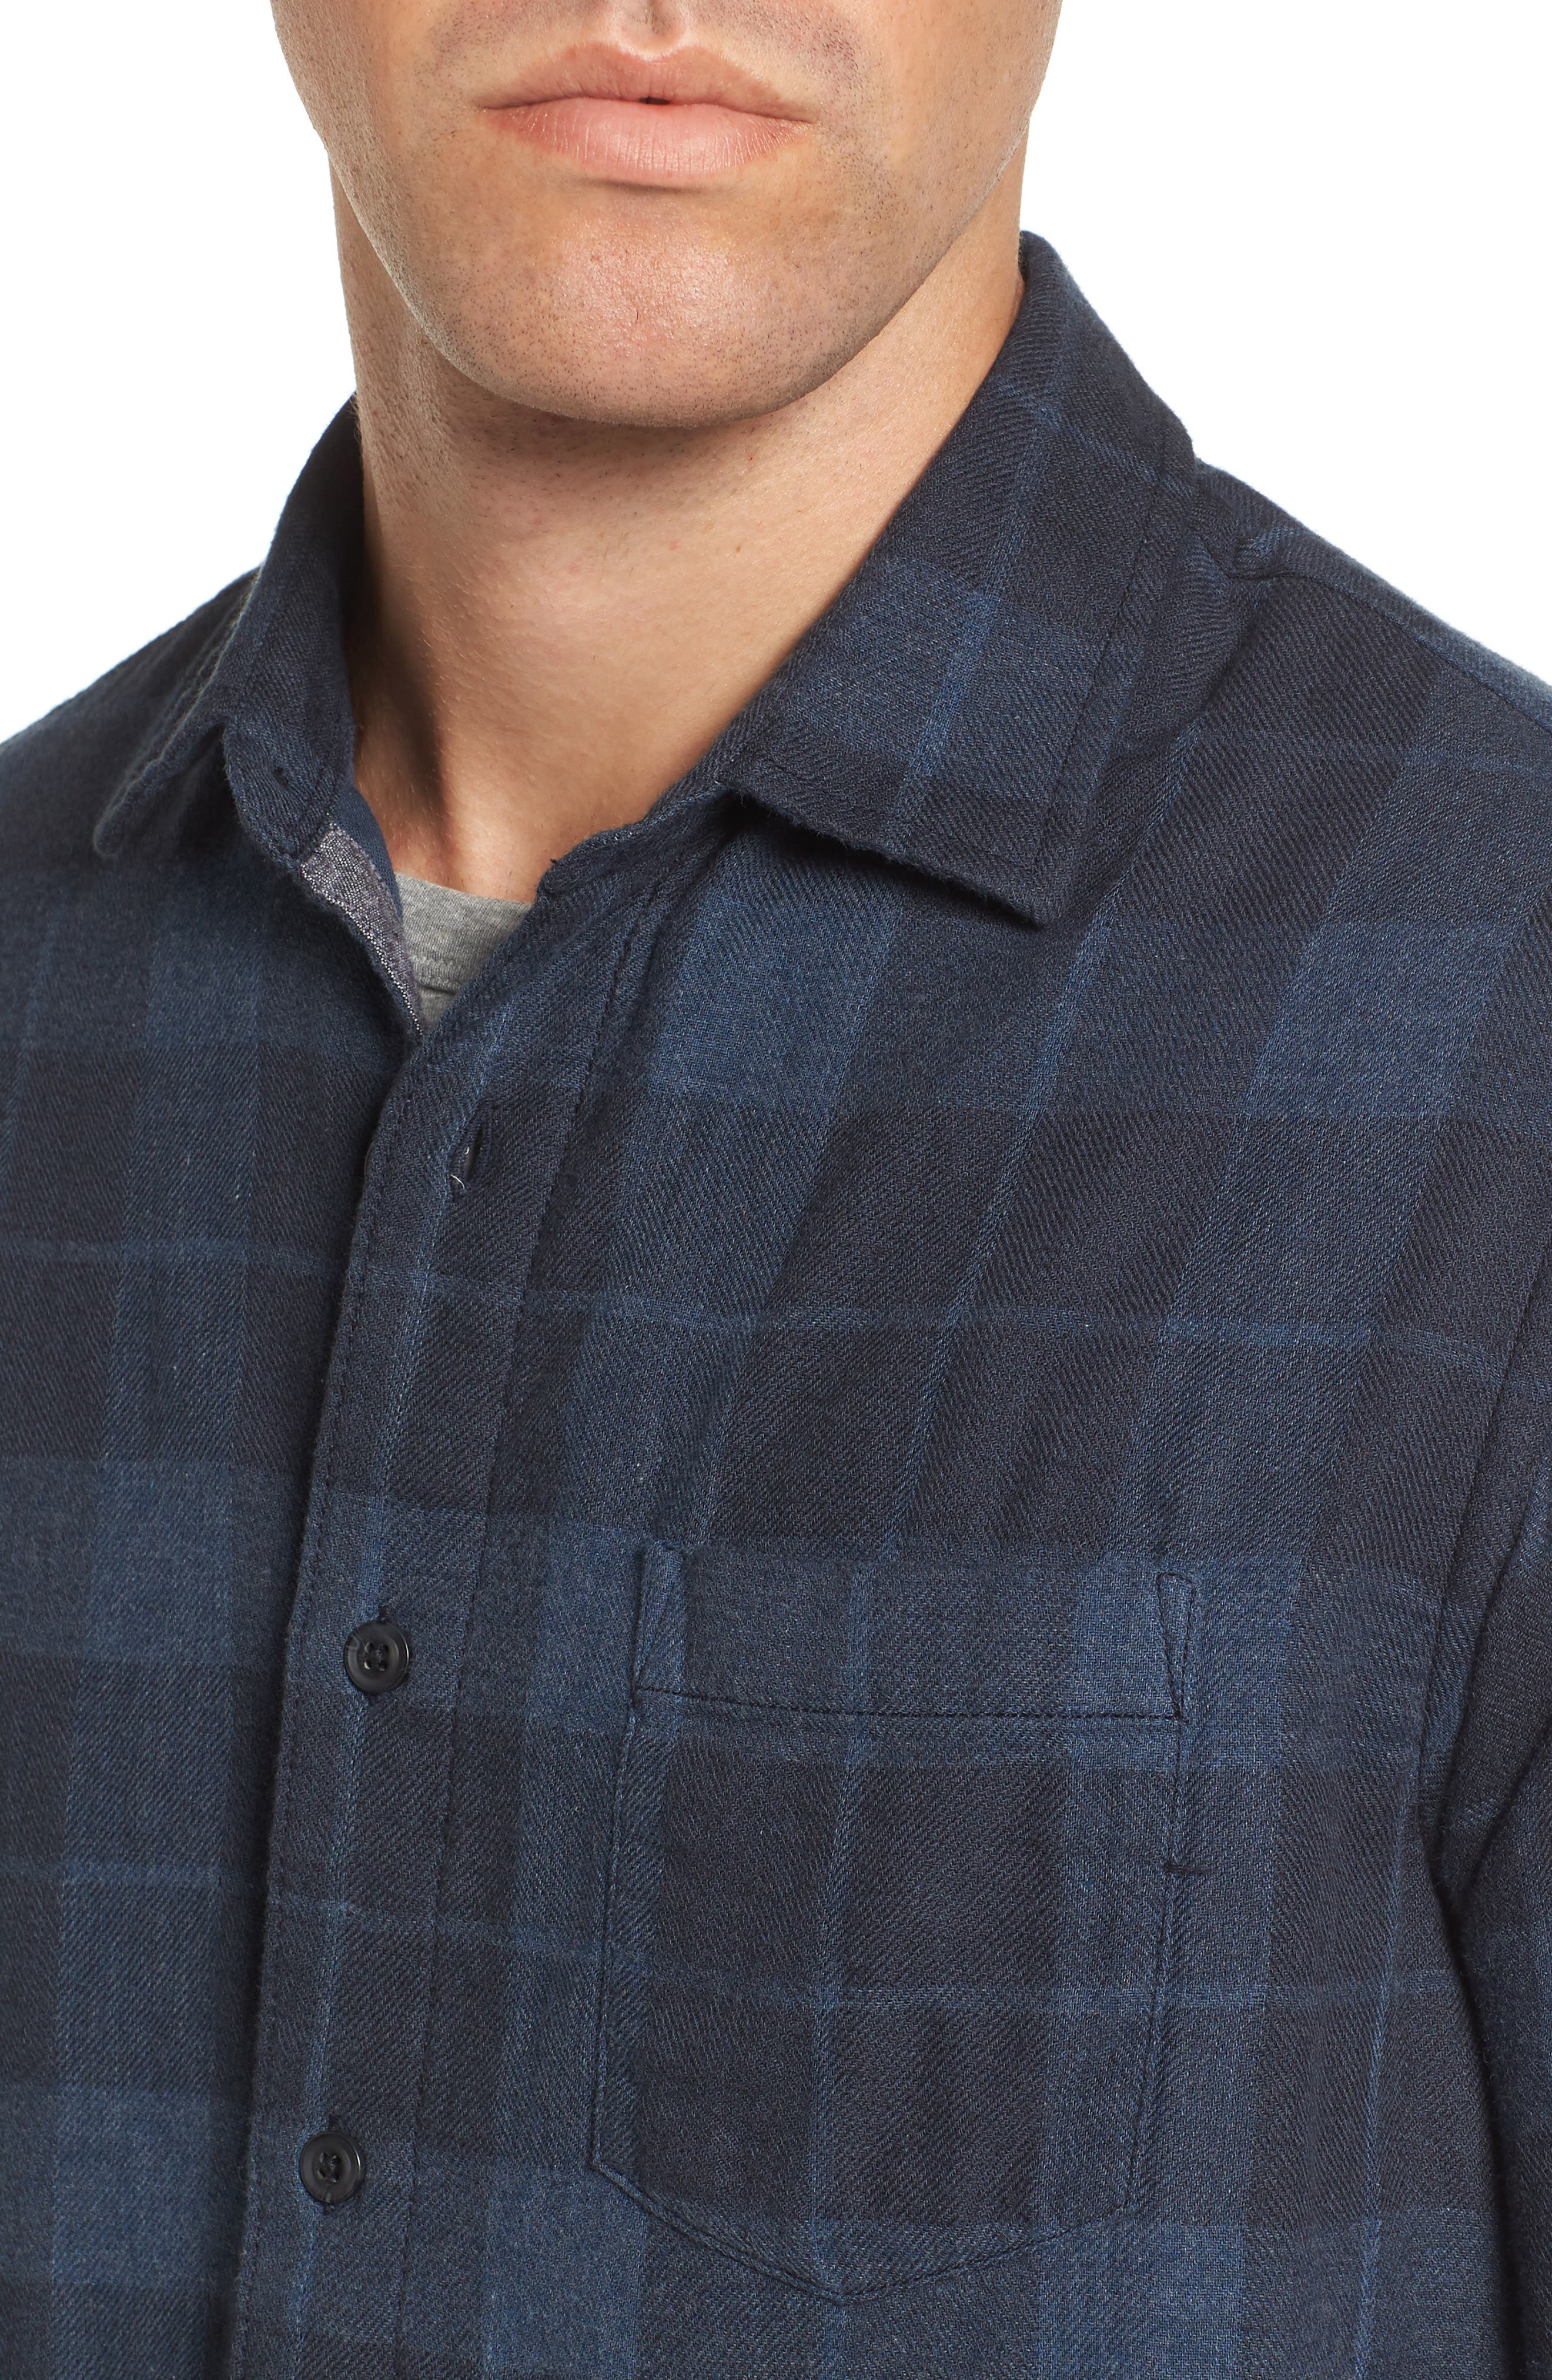 Helsby Double Cloth Plaid Sport Shirt,                             Alternate thumbnail 4, color,                             Charcoal Navy Heather